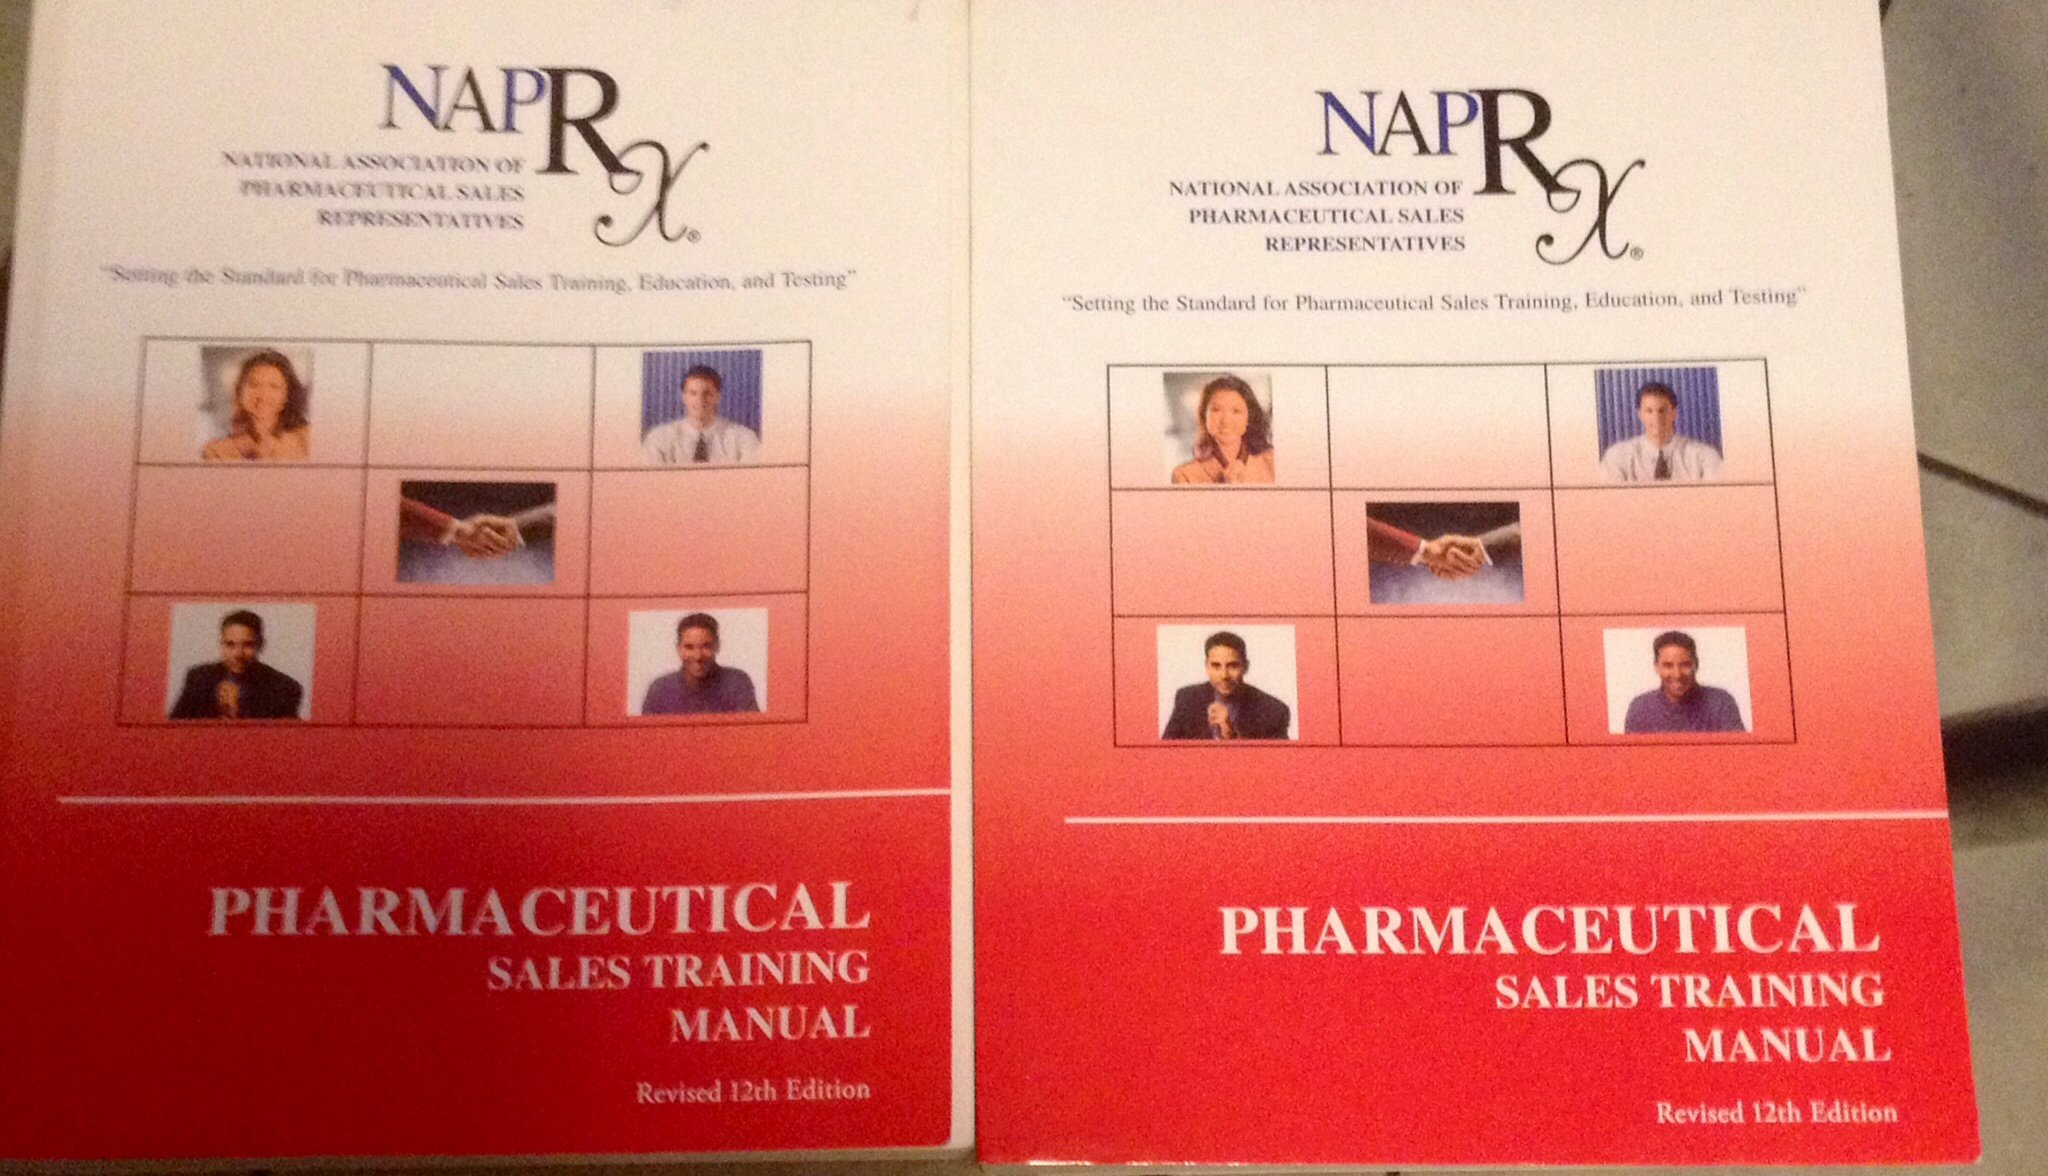 Pharmaceutical sales training manual napsrx napsrx amazon pharmaceutical sales training manual napsrx napsrx amazon books xflitez Image collections